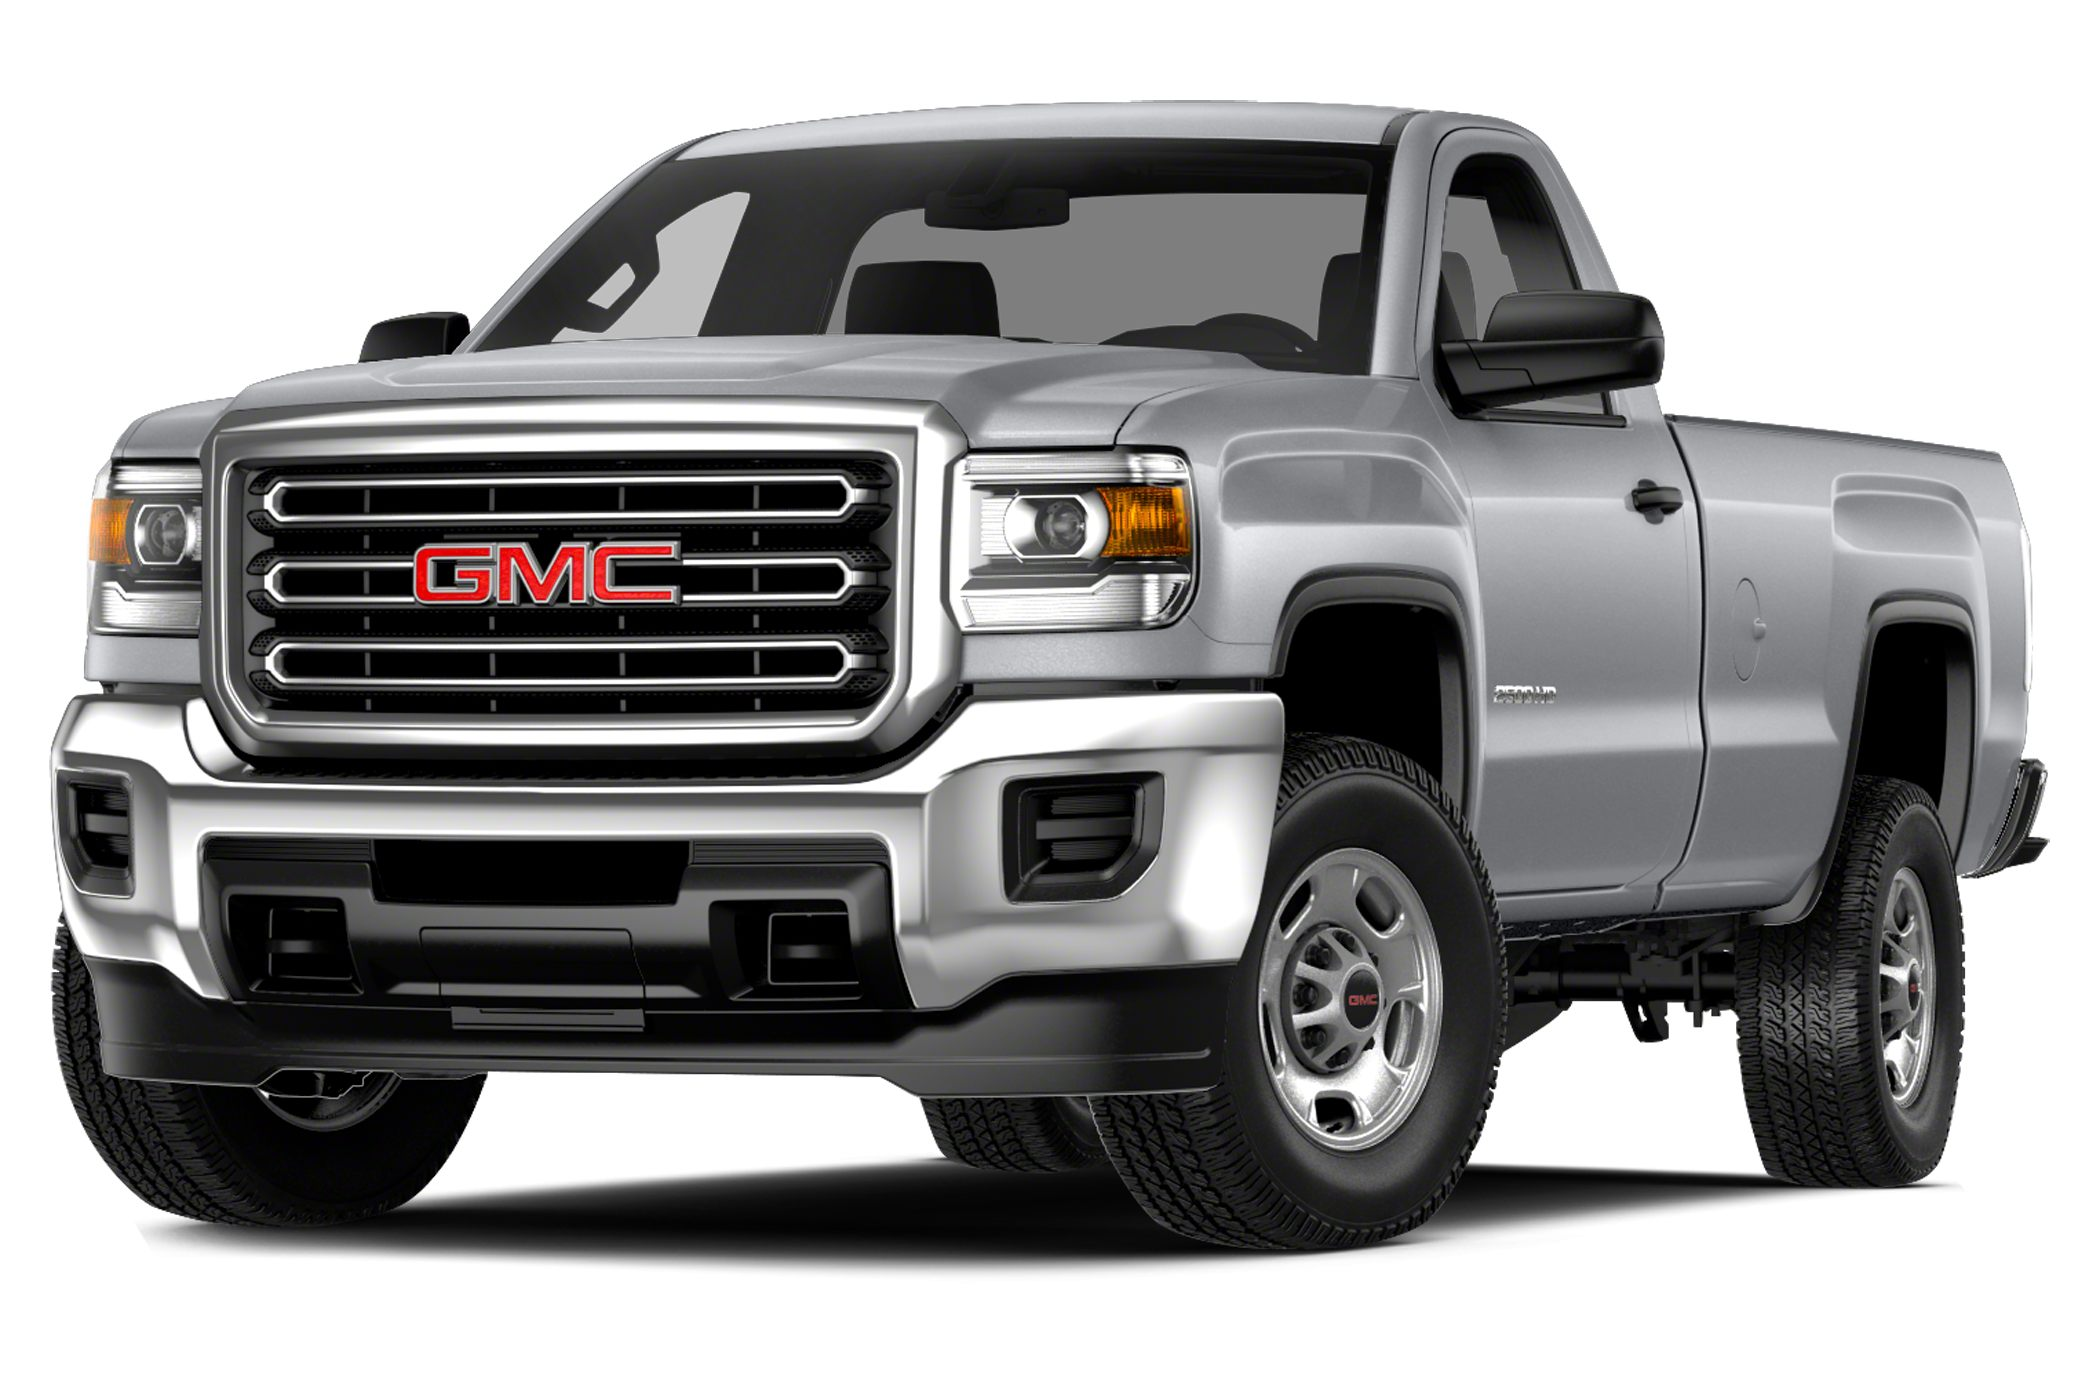 GMC Sierra 3500HD Base #1